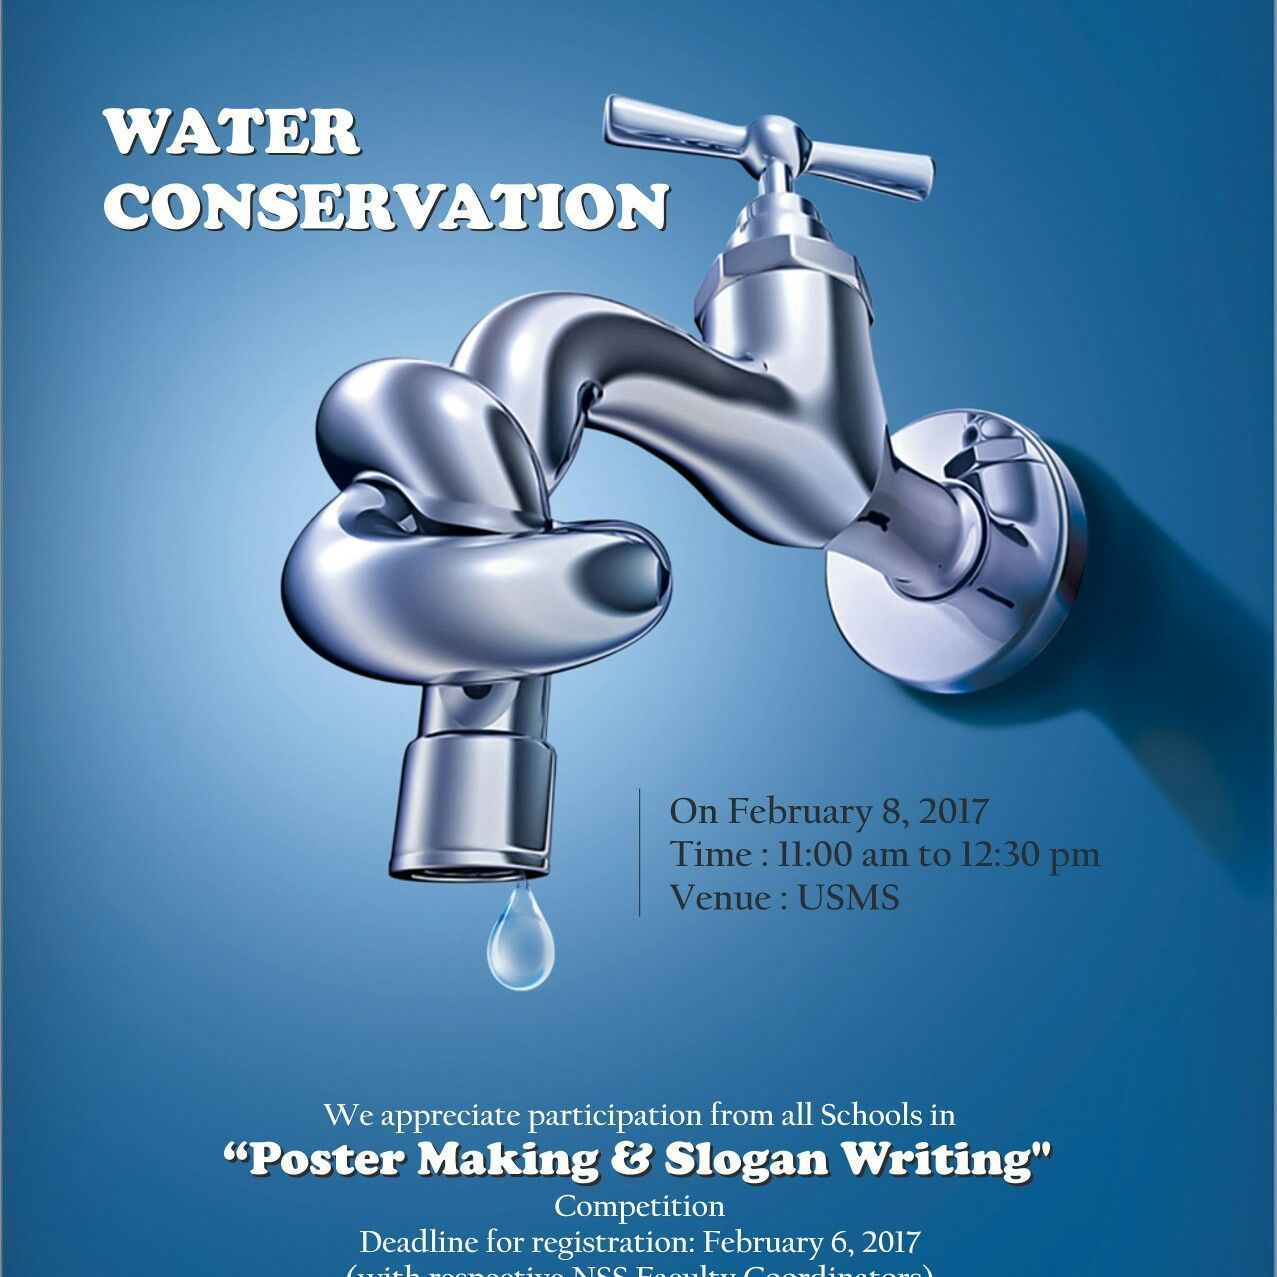 Poster design on save water - University School Of Management Studies Is Organizing Poster Making Slogan Writing Competition On